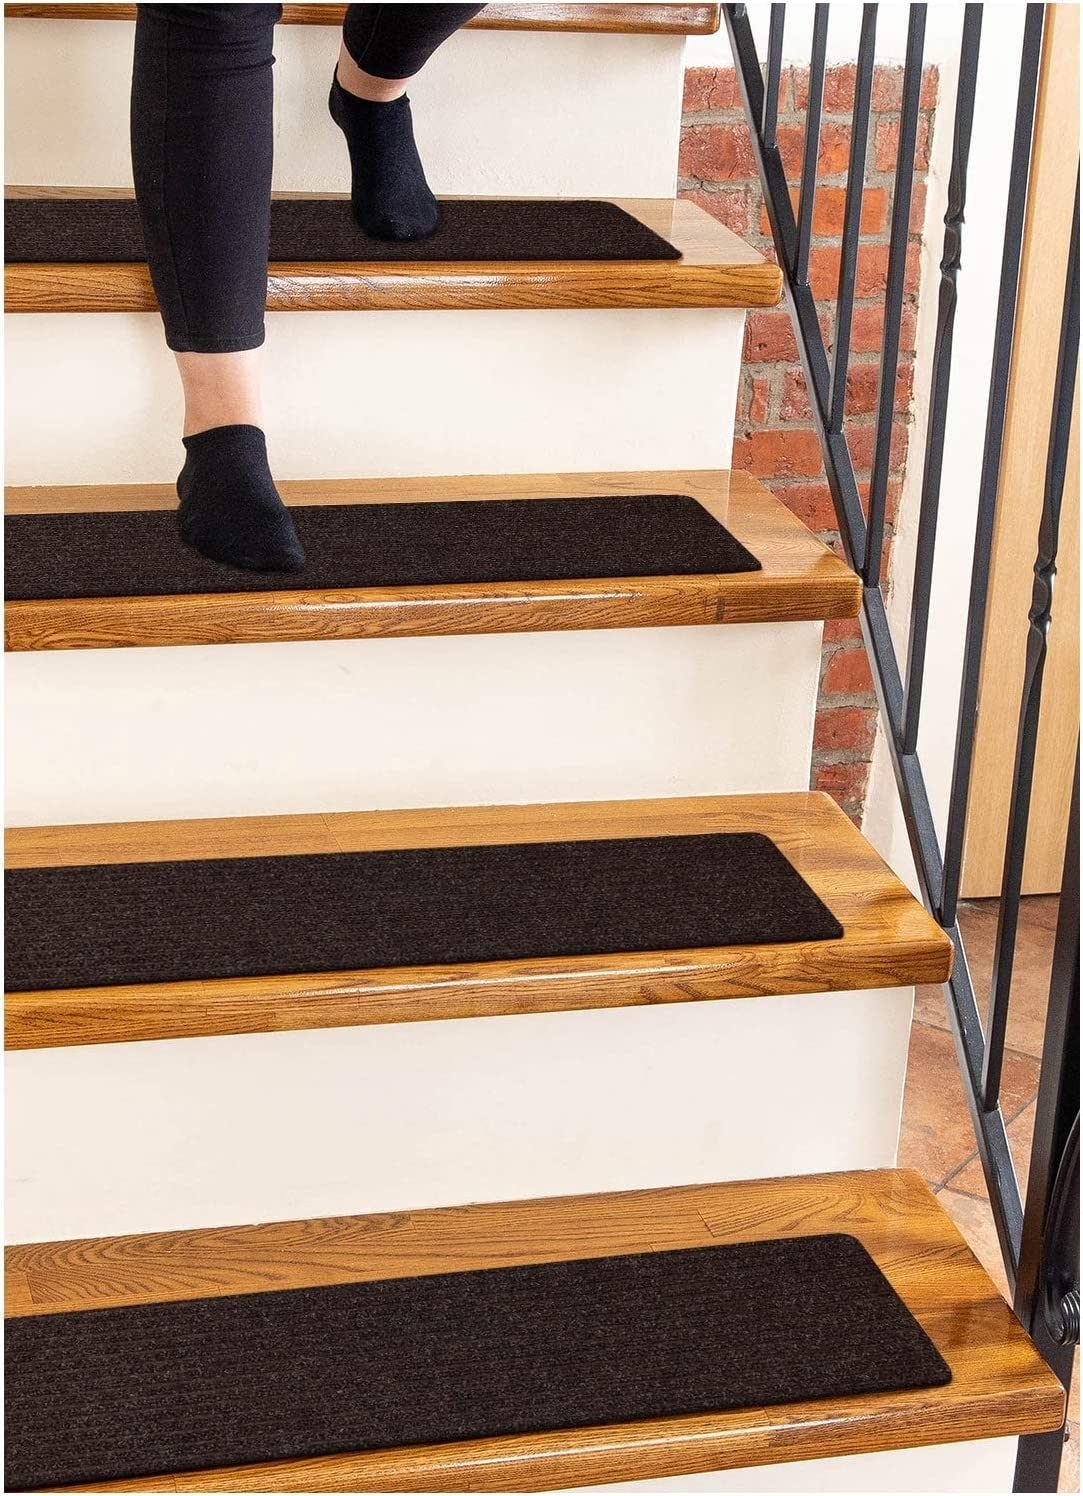 Carpet Stair Treads Non Slip 8 X30 Brown 15 Pack Runners For | Converting Carpeted Stairs To Wood | Stair Tread | Staircase Makeover | Laminate Flooring | Wood Flooring | Risers